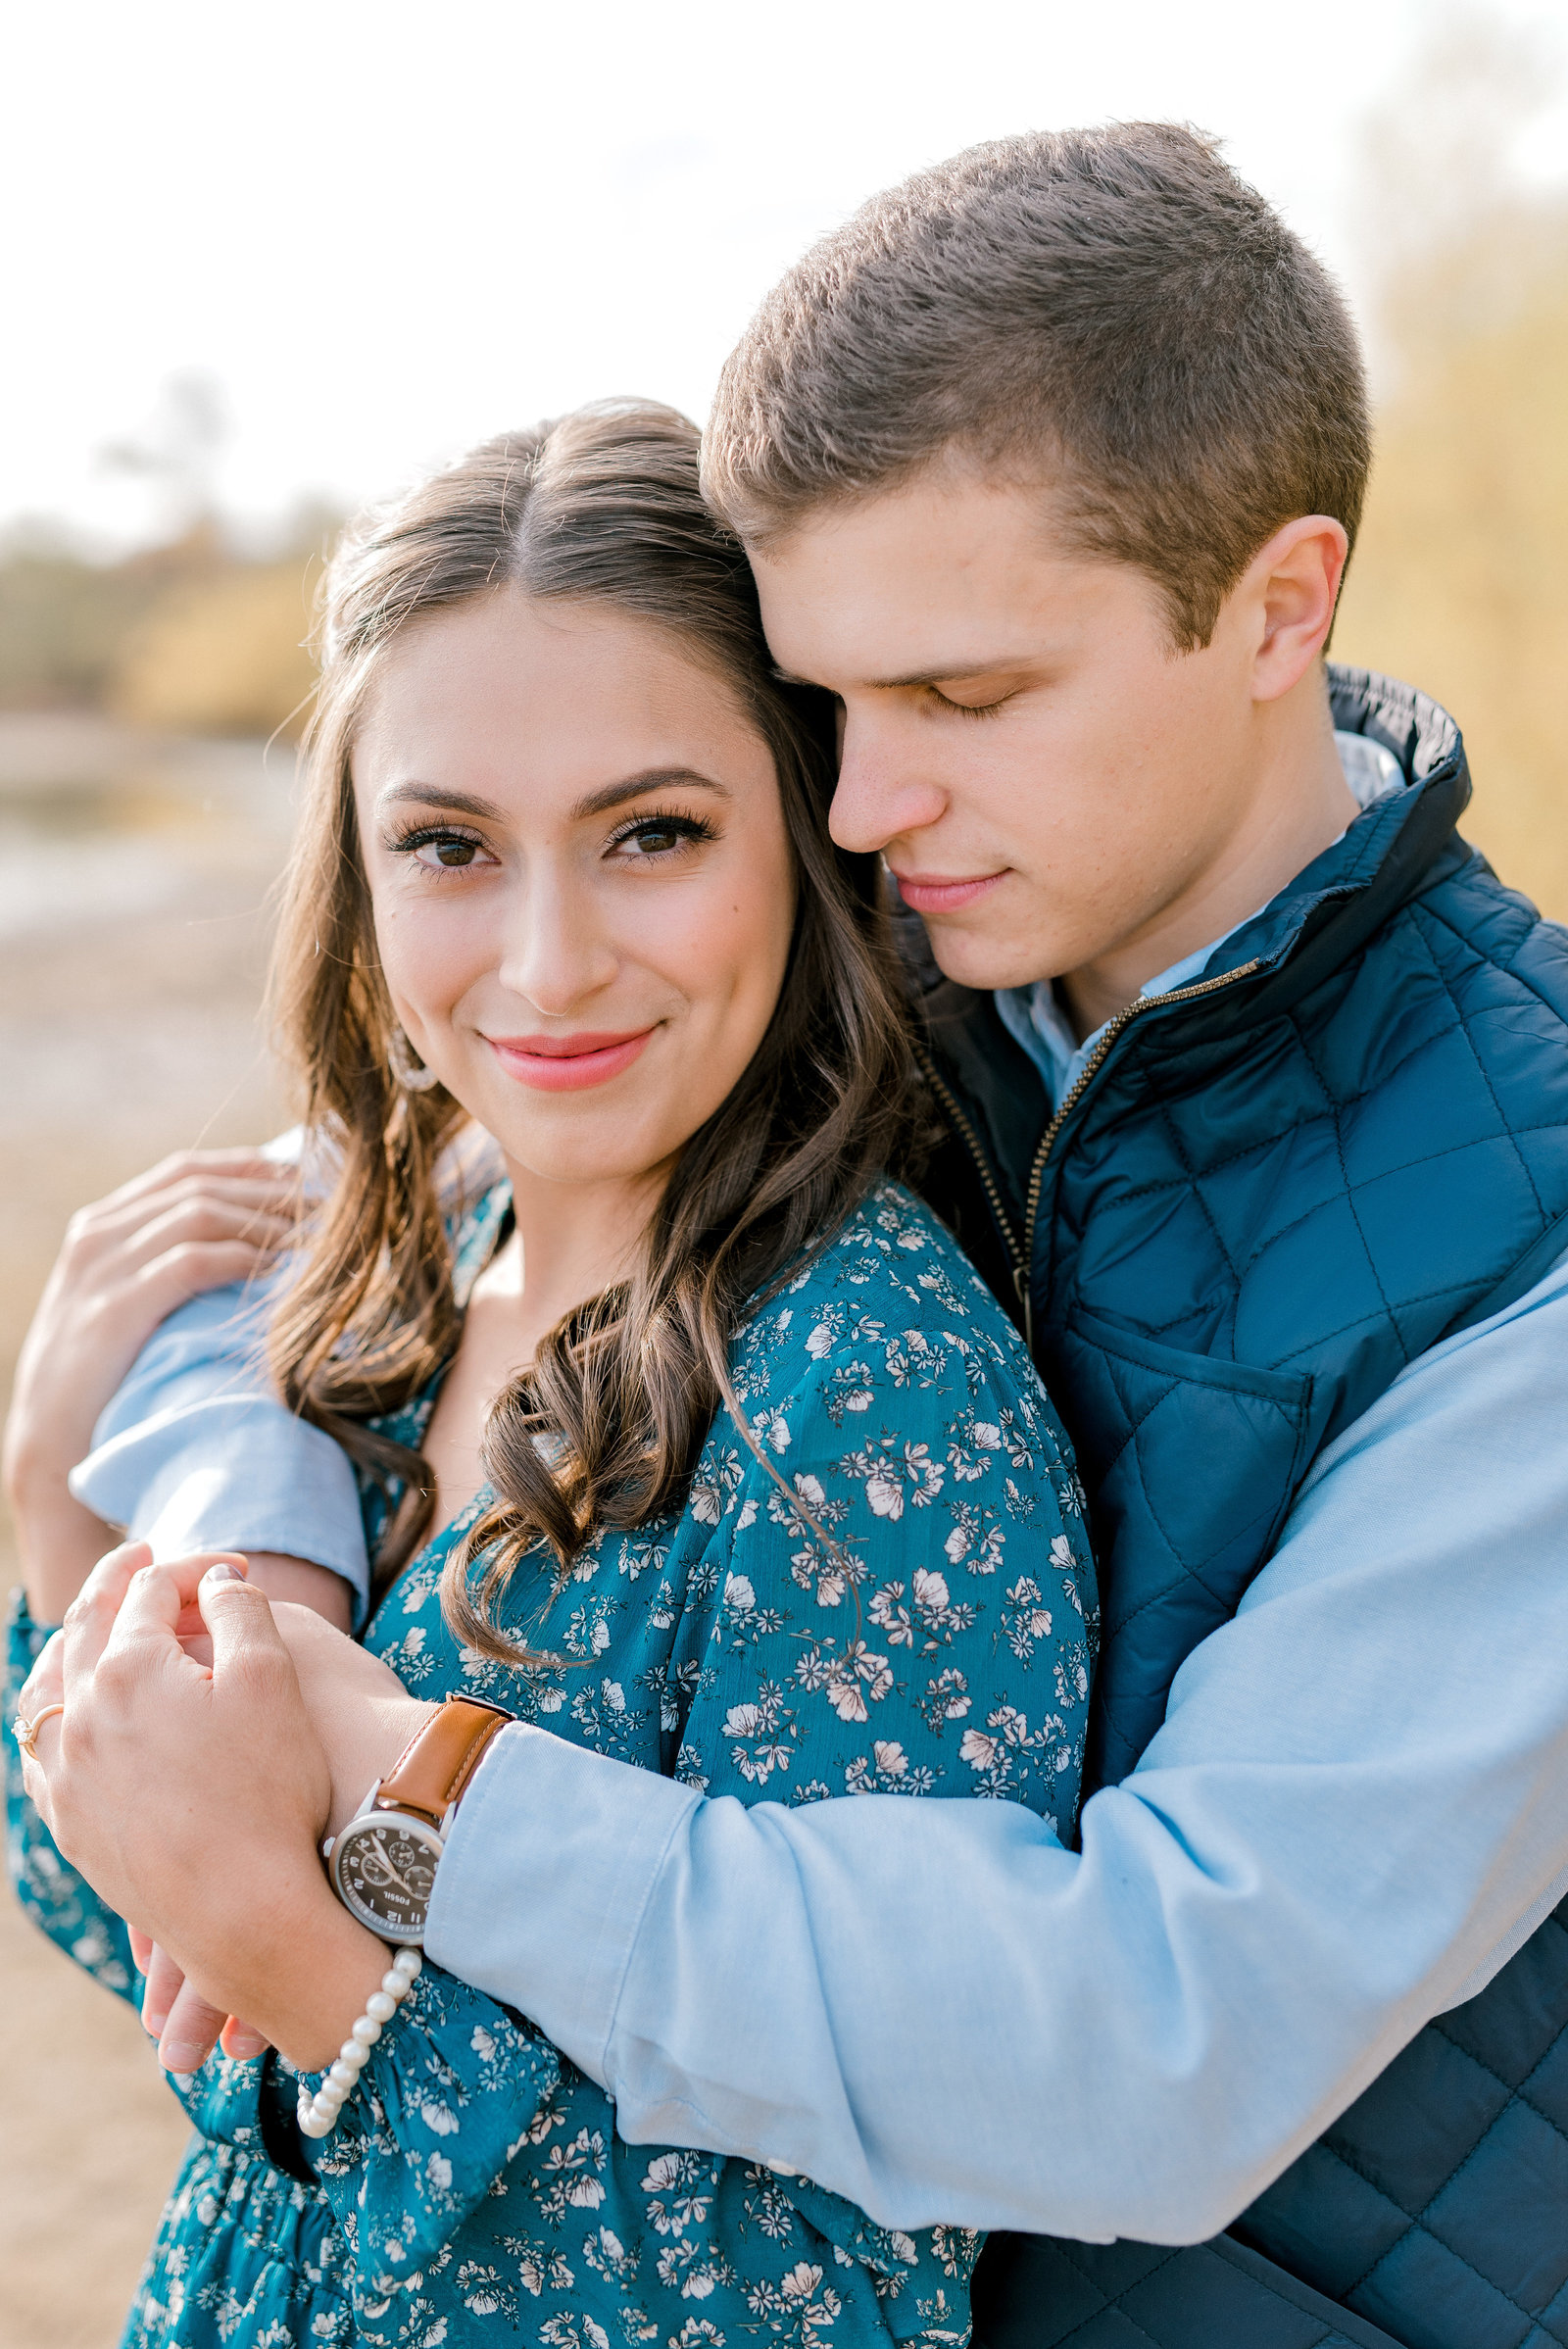 WNY Fall Engagement Session with Amazing Light